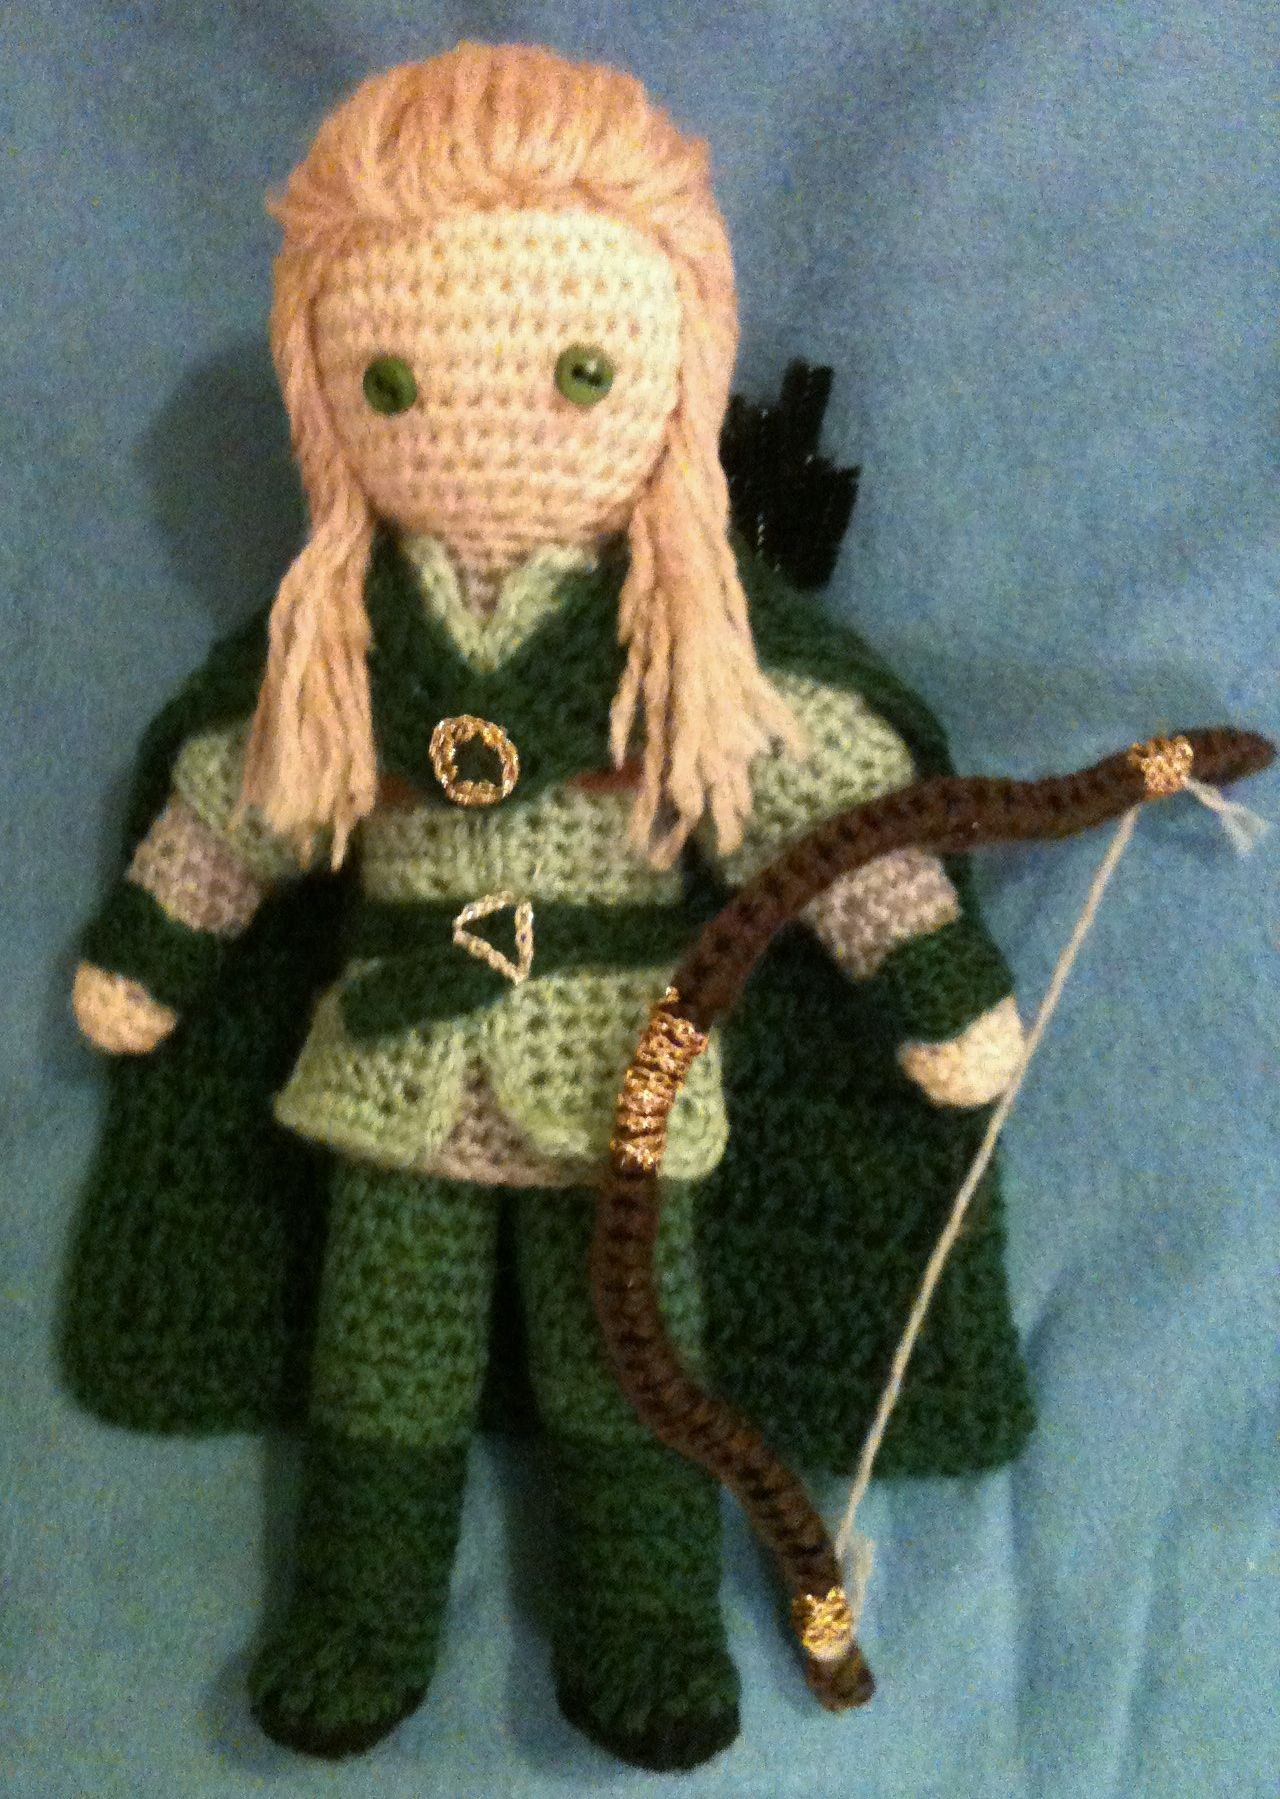 Aragorn Lord of the Rings Amigurumi Crochet by Just-Add-Awesome on ... | 1799x1280